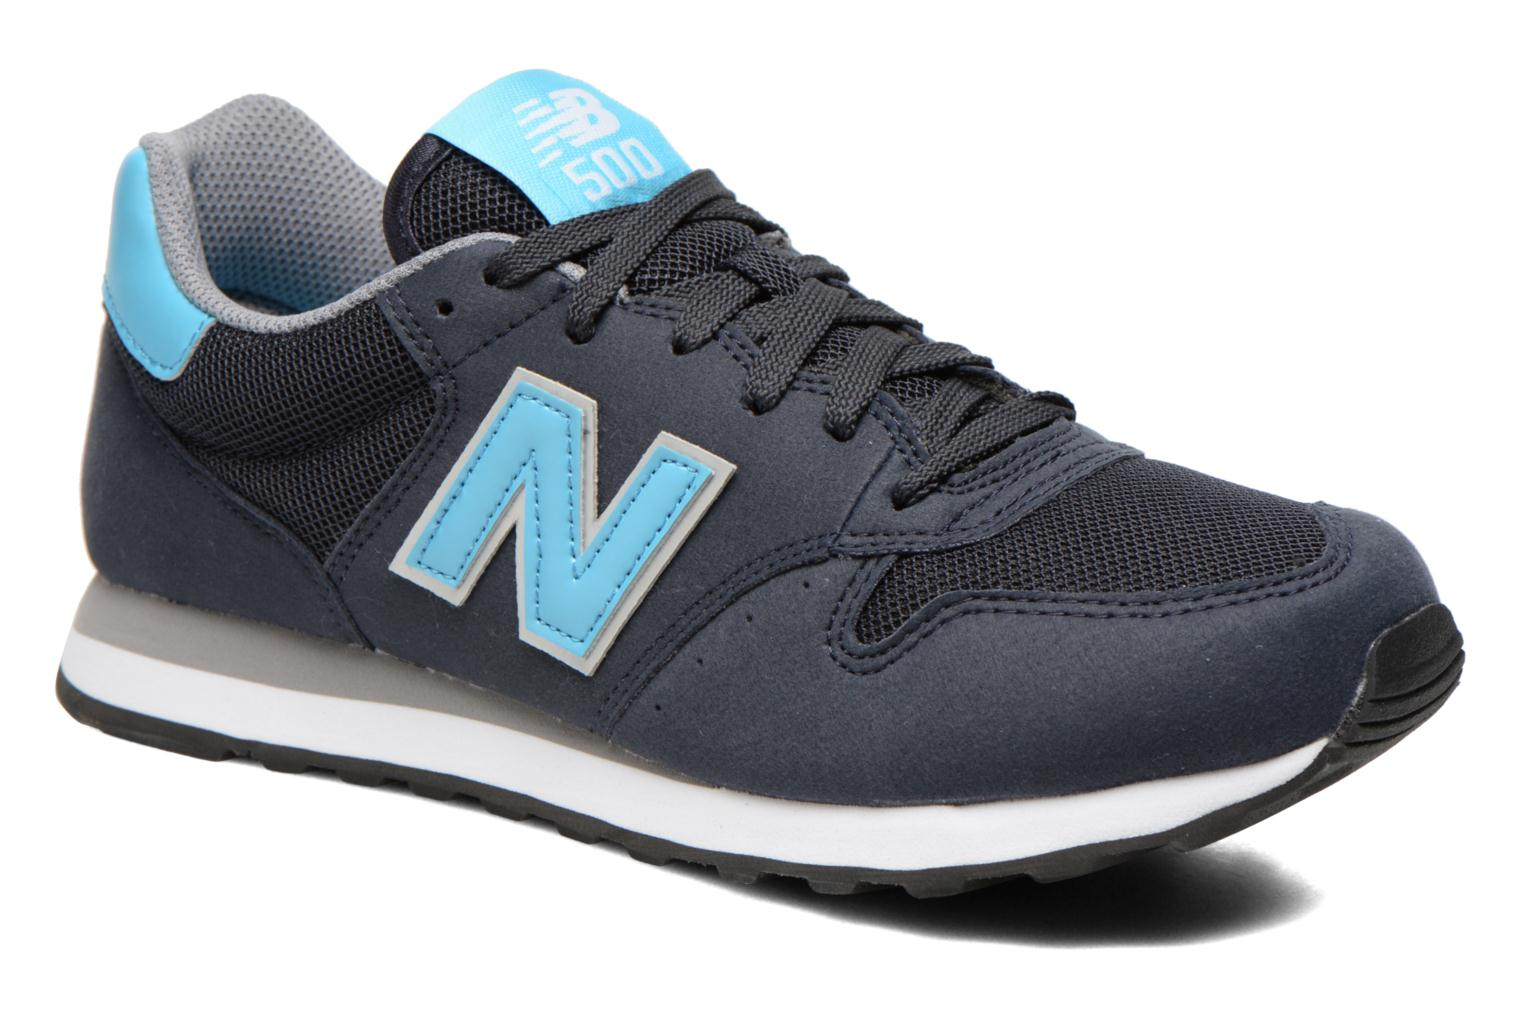 Sneakers GW500 by New Balance